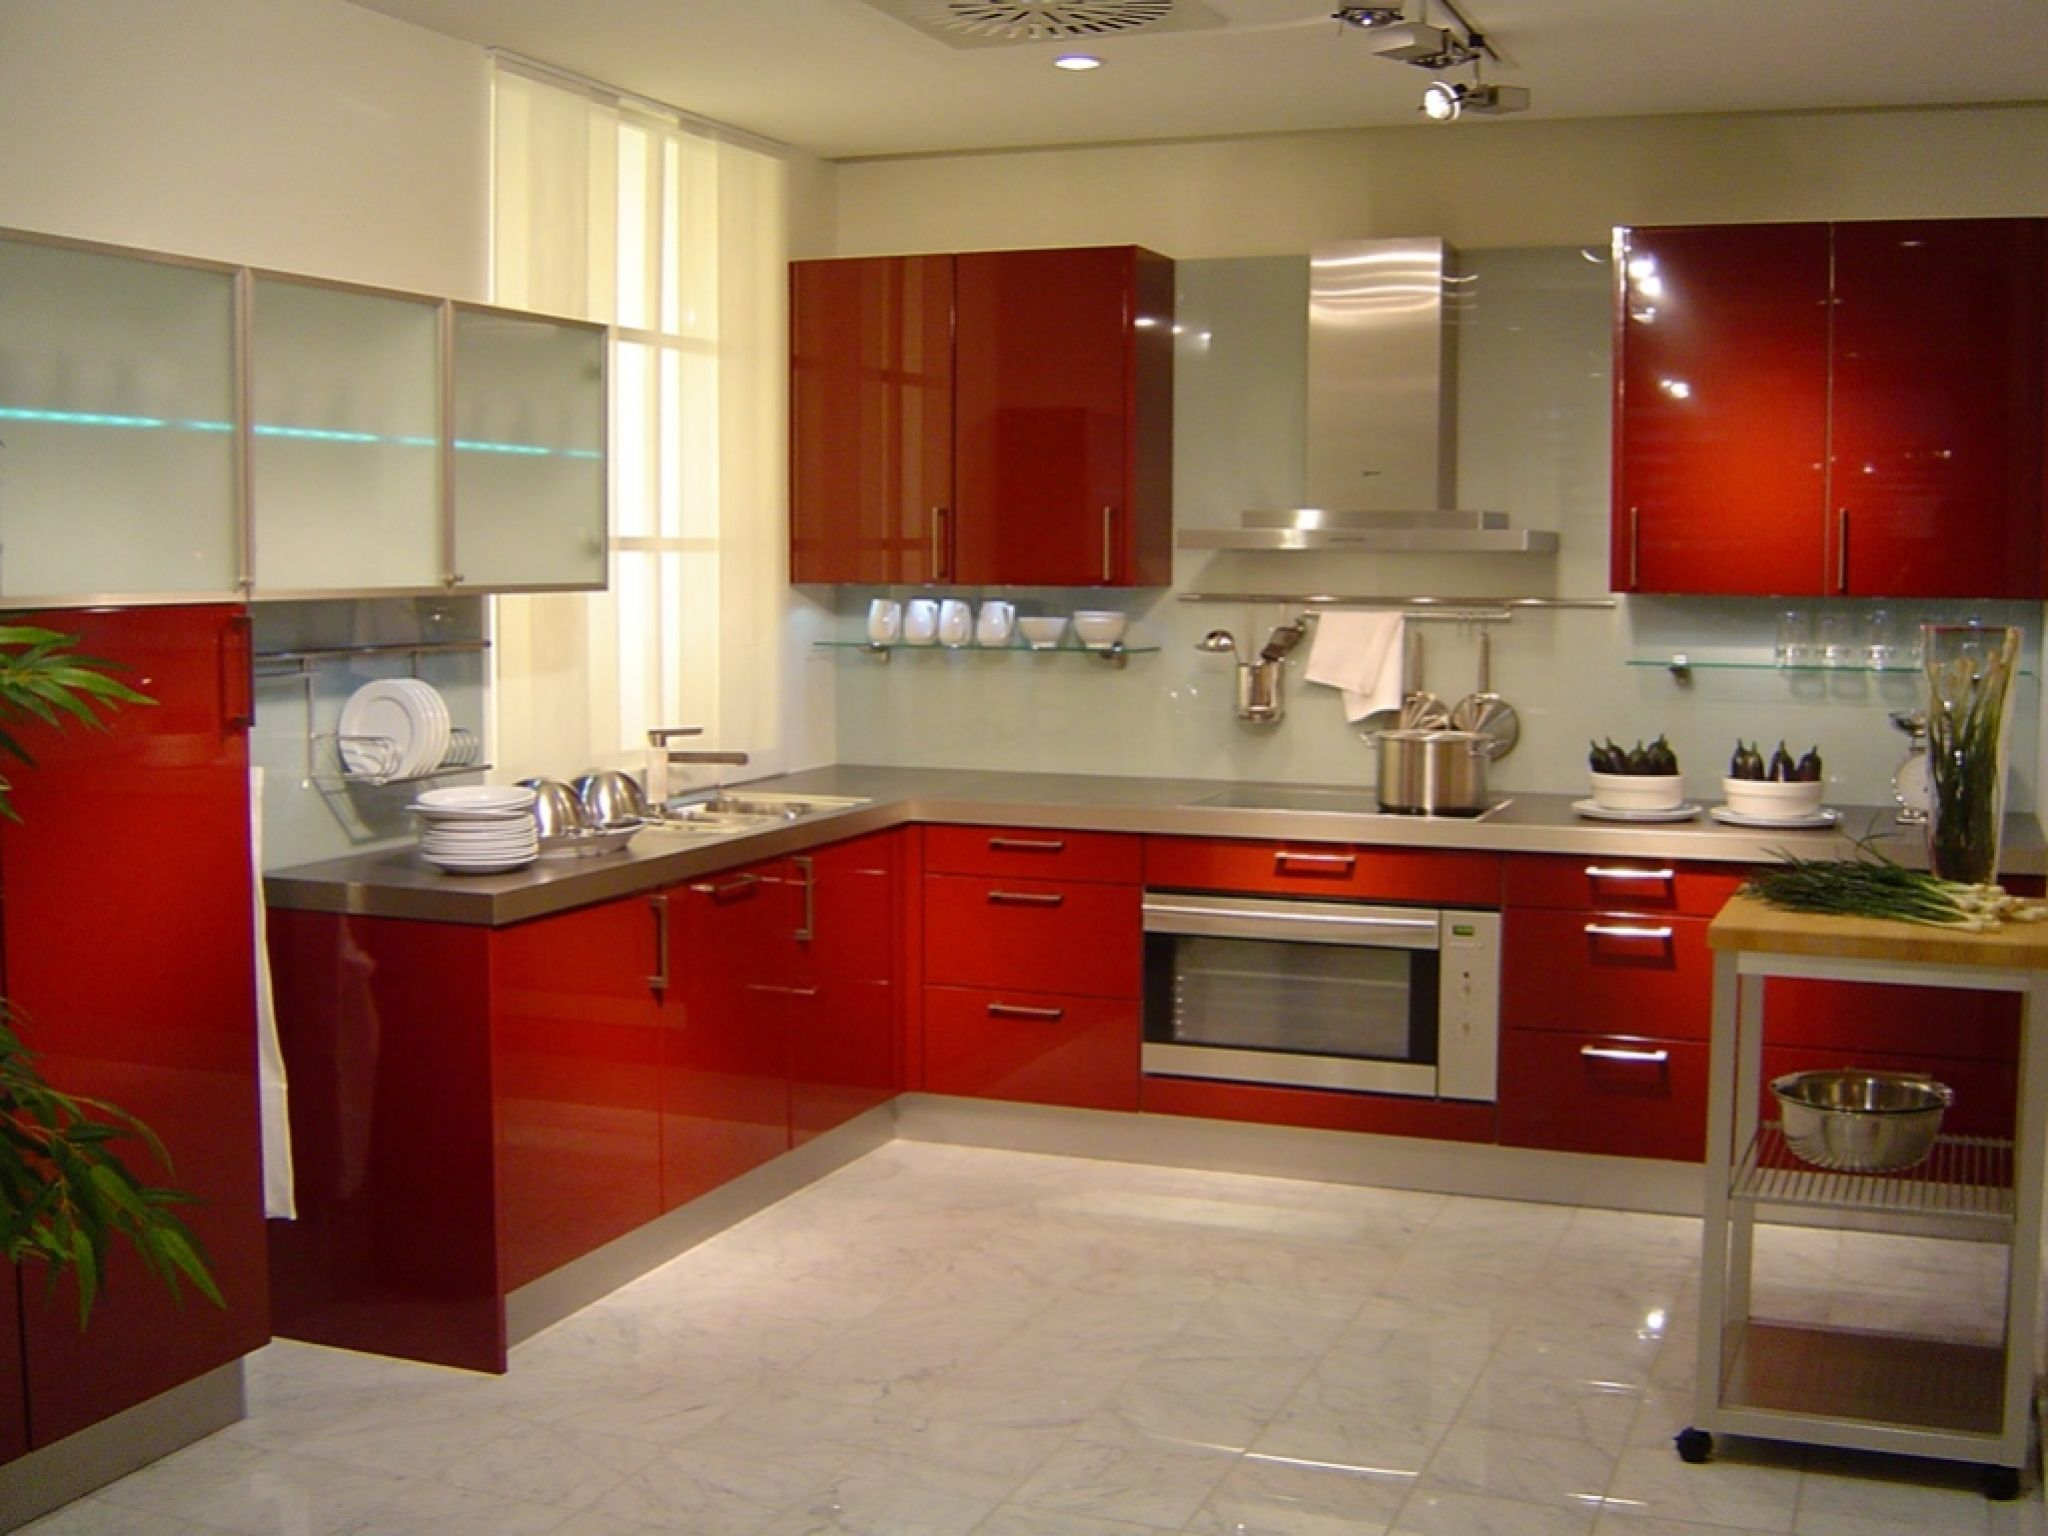 Lowes Refacing Kitchen Cabinets   Kitchen Cabinets Update Ideas On A Budget  Check More At Http